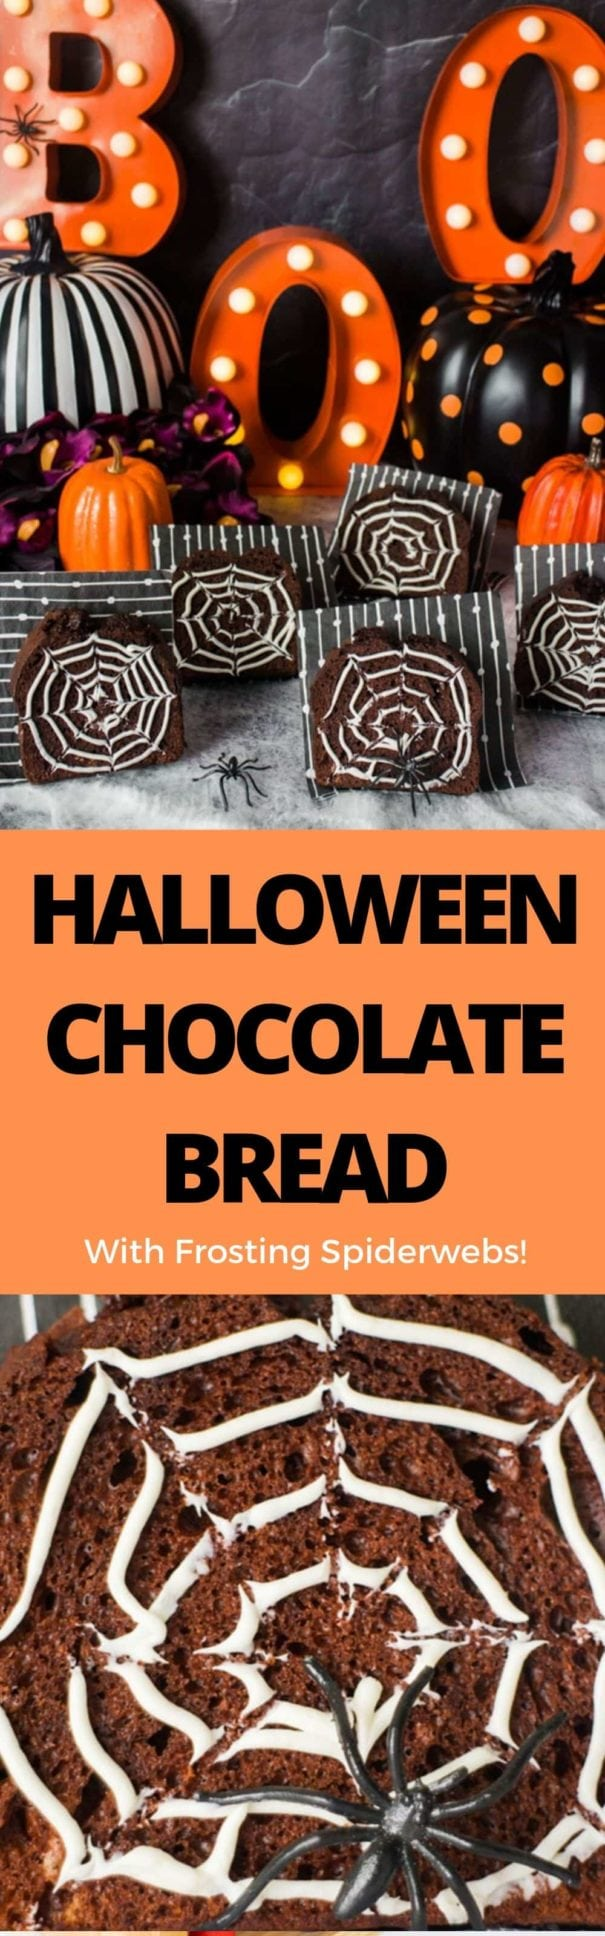 Easy to make Chocolate Bread with frosting spiderwebs on top. This is one of my favorite Halloween dessert recipes, perfect for kids and spooky parties!